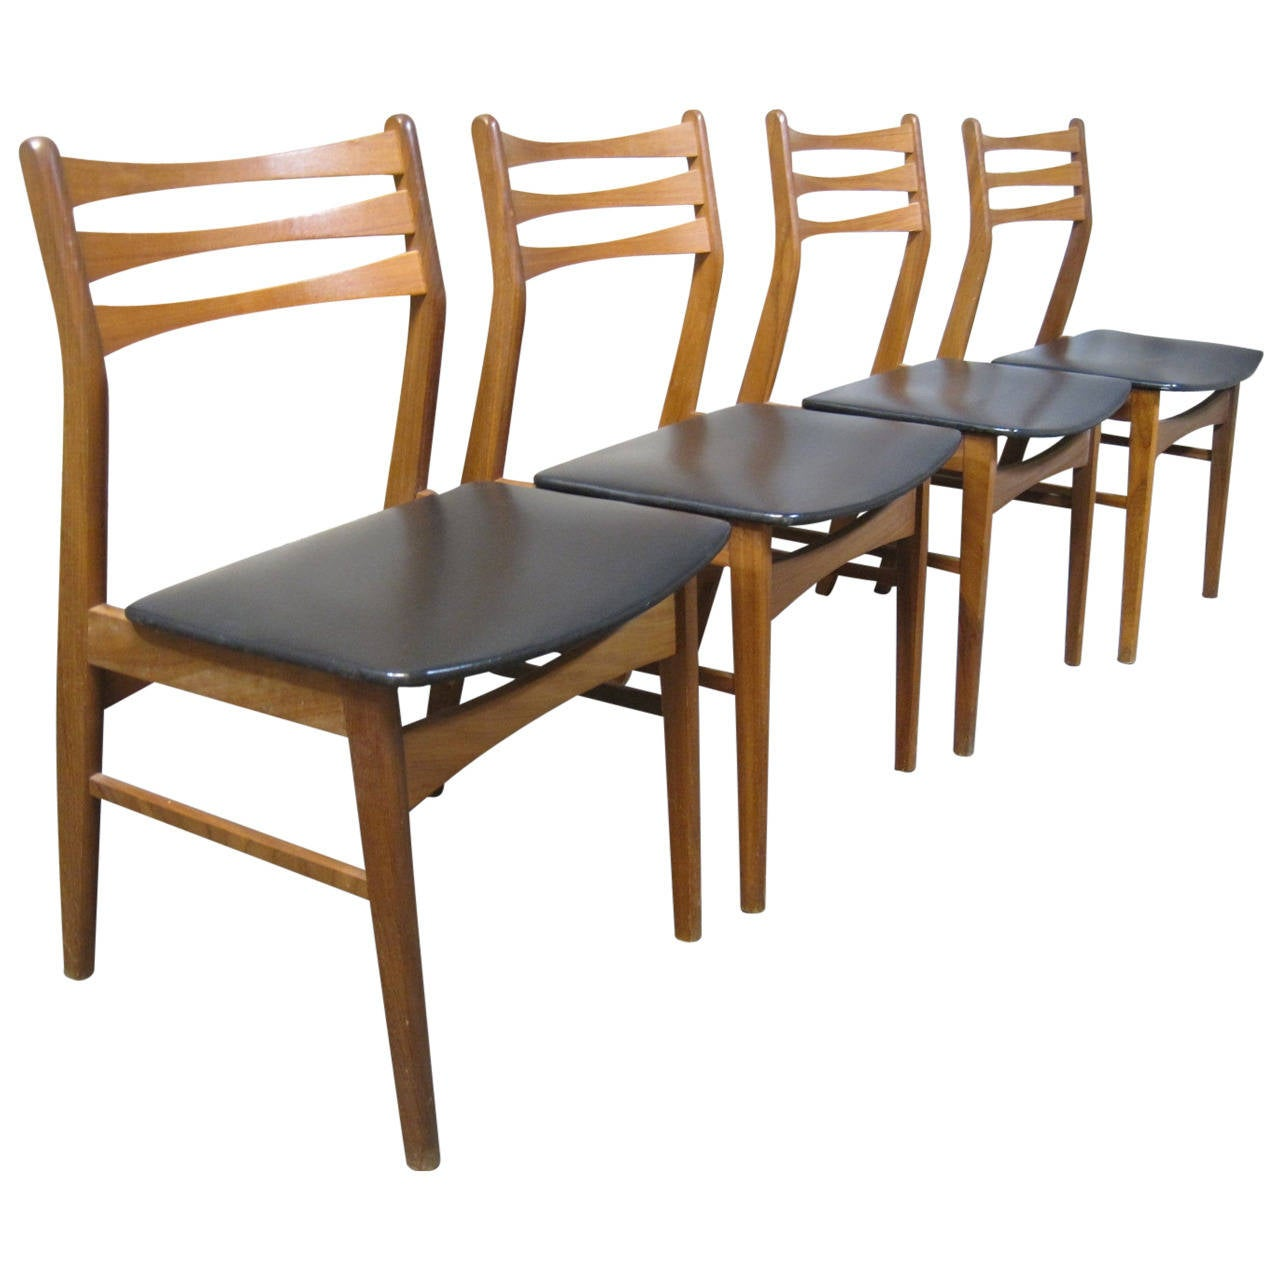 Set Of Four Findahls Møbelfabrik Danish Teak Dining Chairs